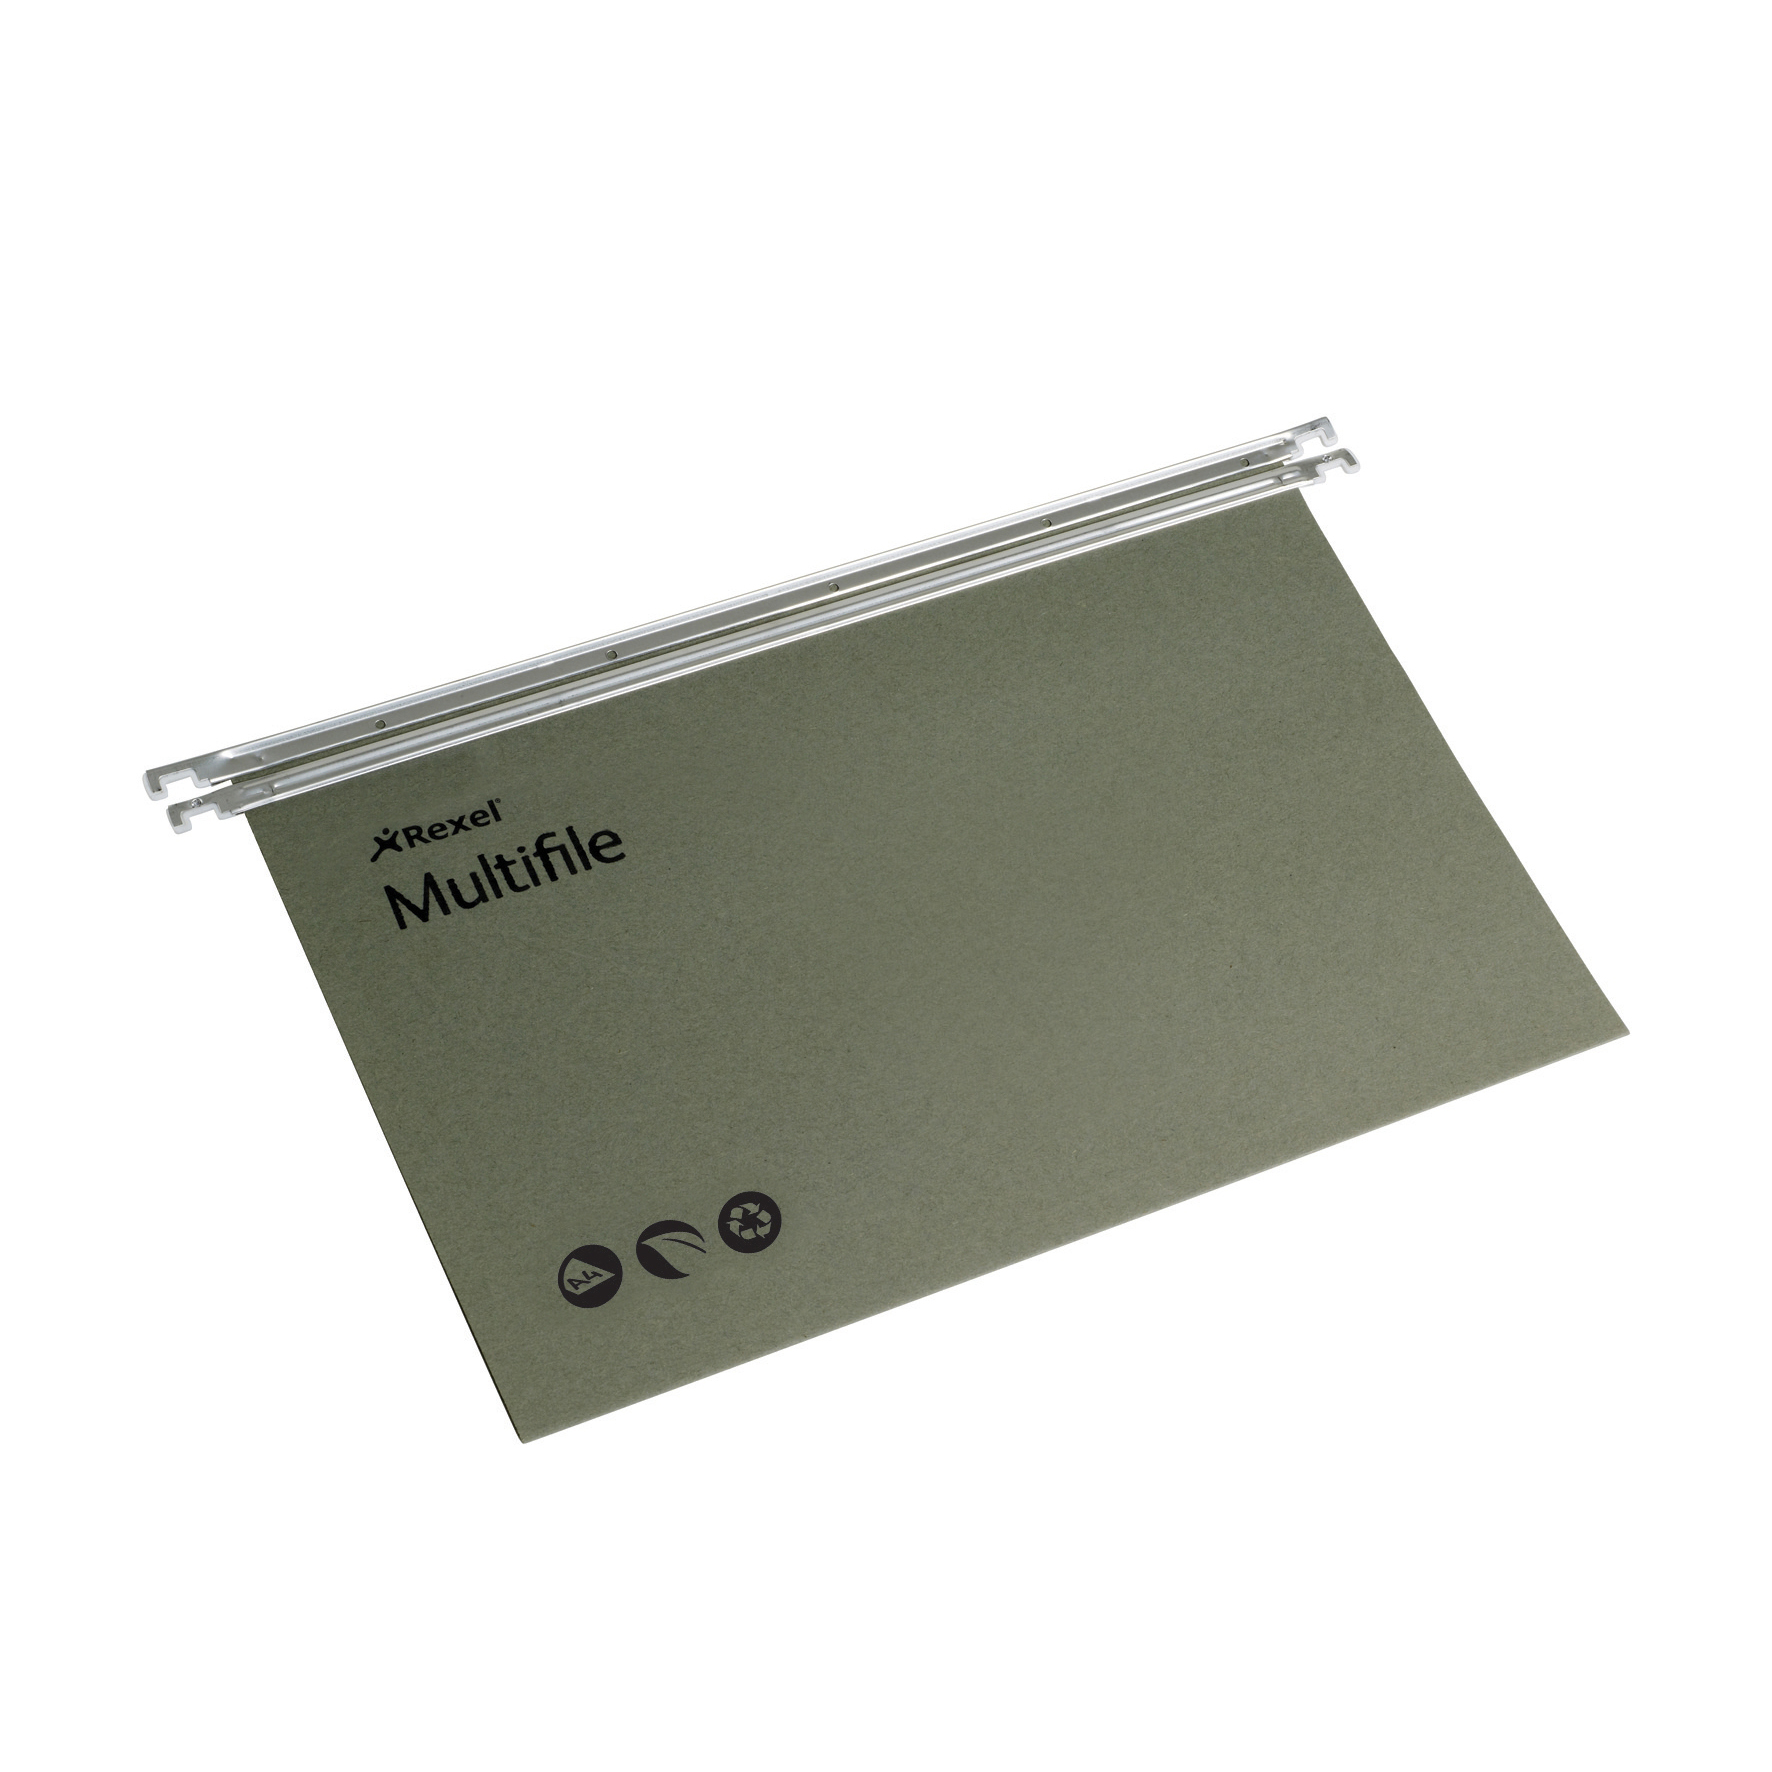 Rexel Multifile Suspension File Manilla 15mm V-base 180gsm A4 Green Ref 78617 [Pack 50]